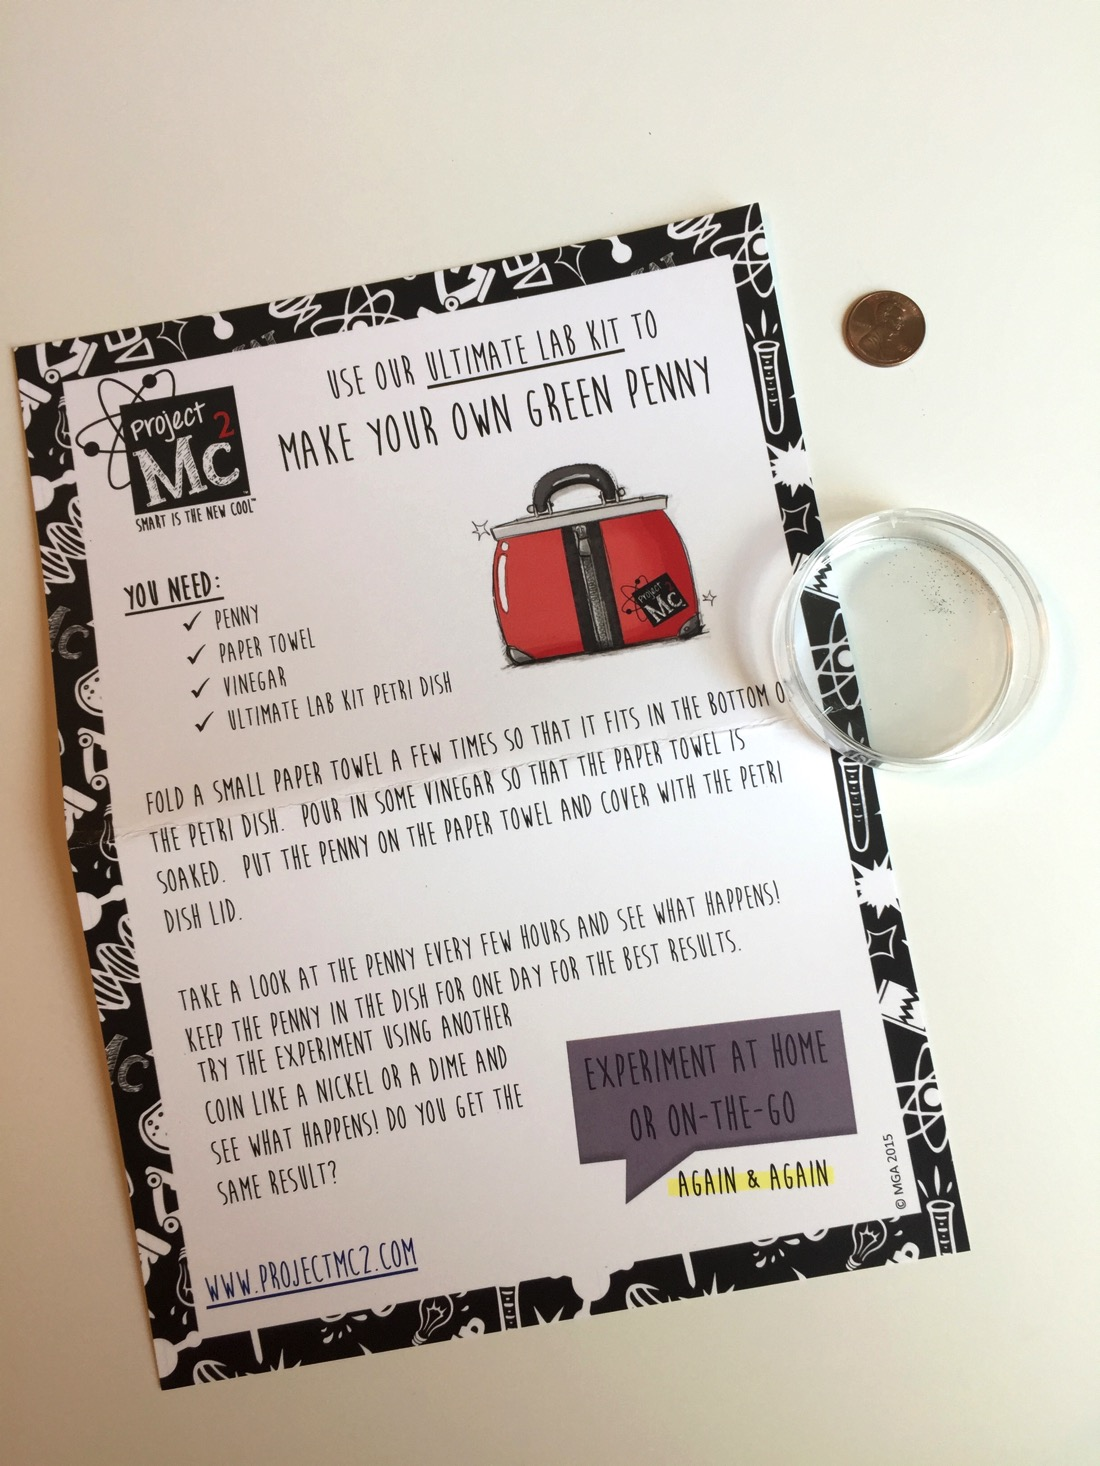 4 S.T.E.A.M Experiments inspired by Project Mc²